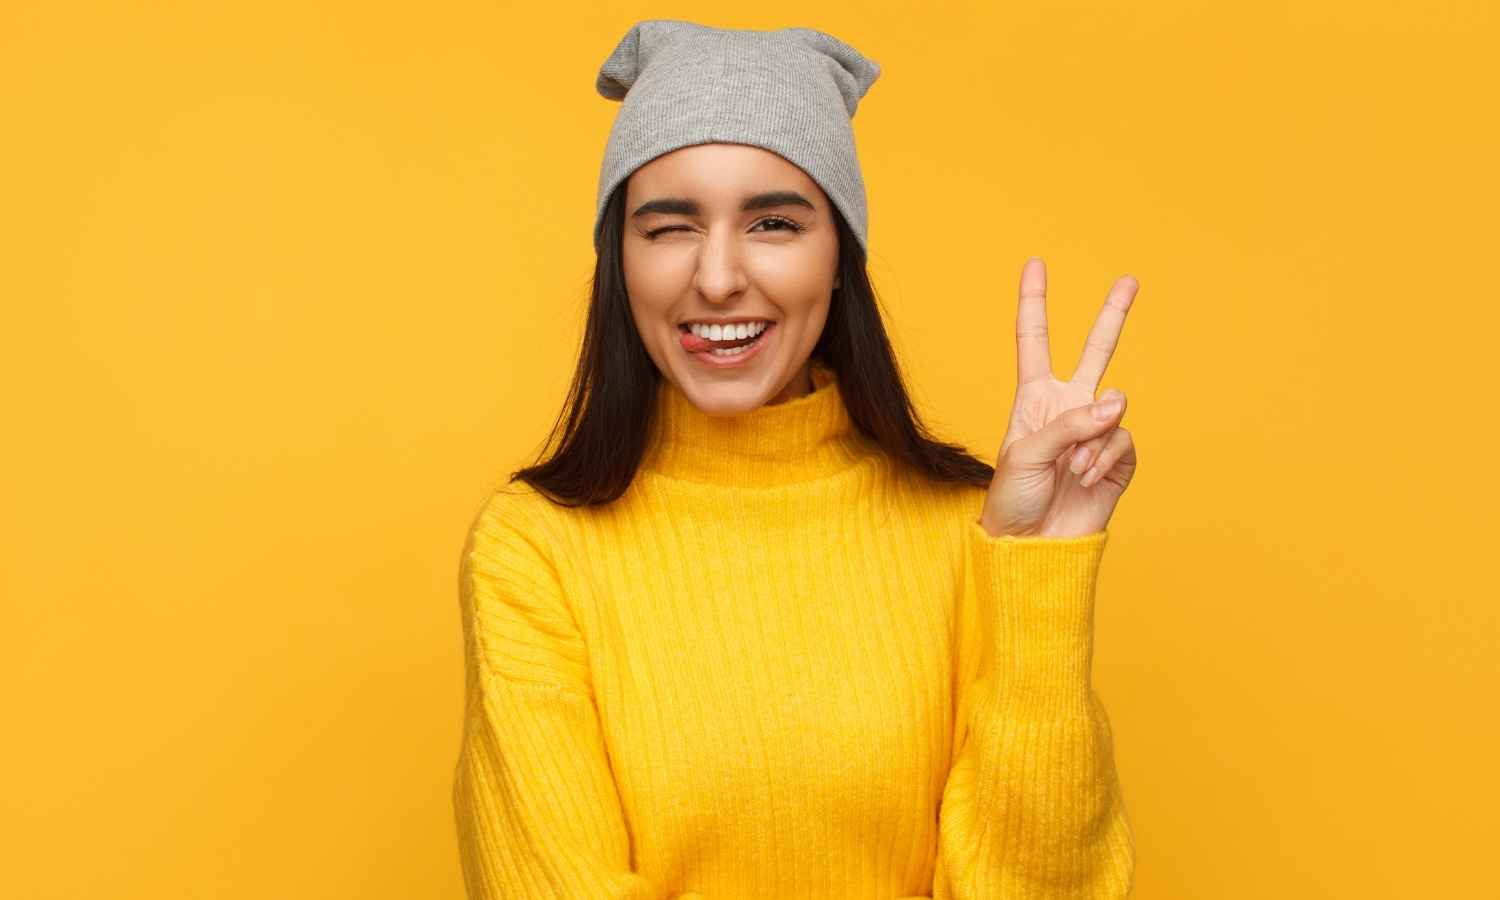 Your Hipster Style Guide + Outfit Ideas for Alternative Fashion